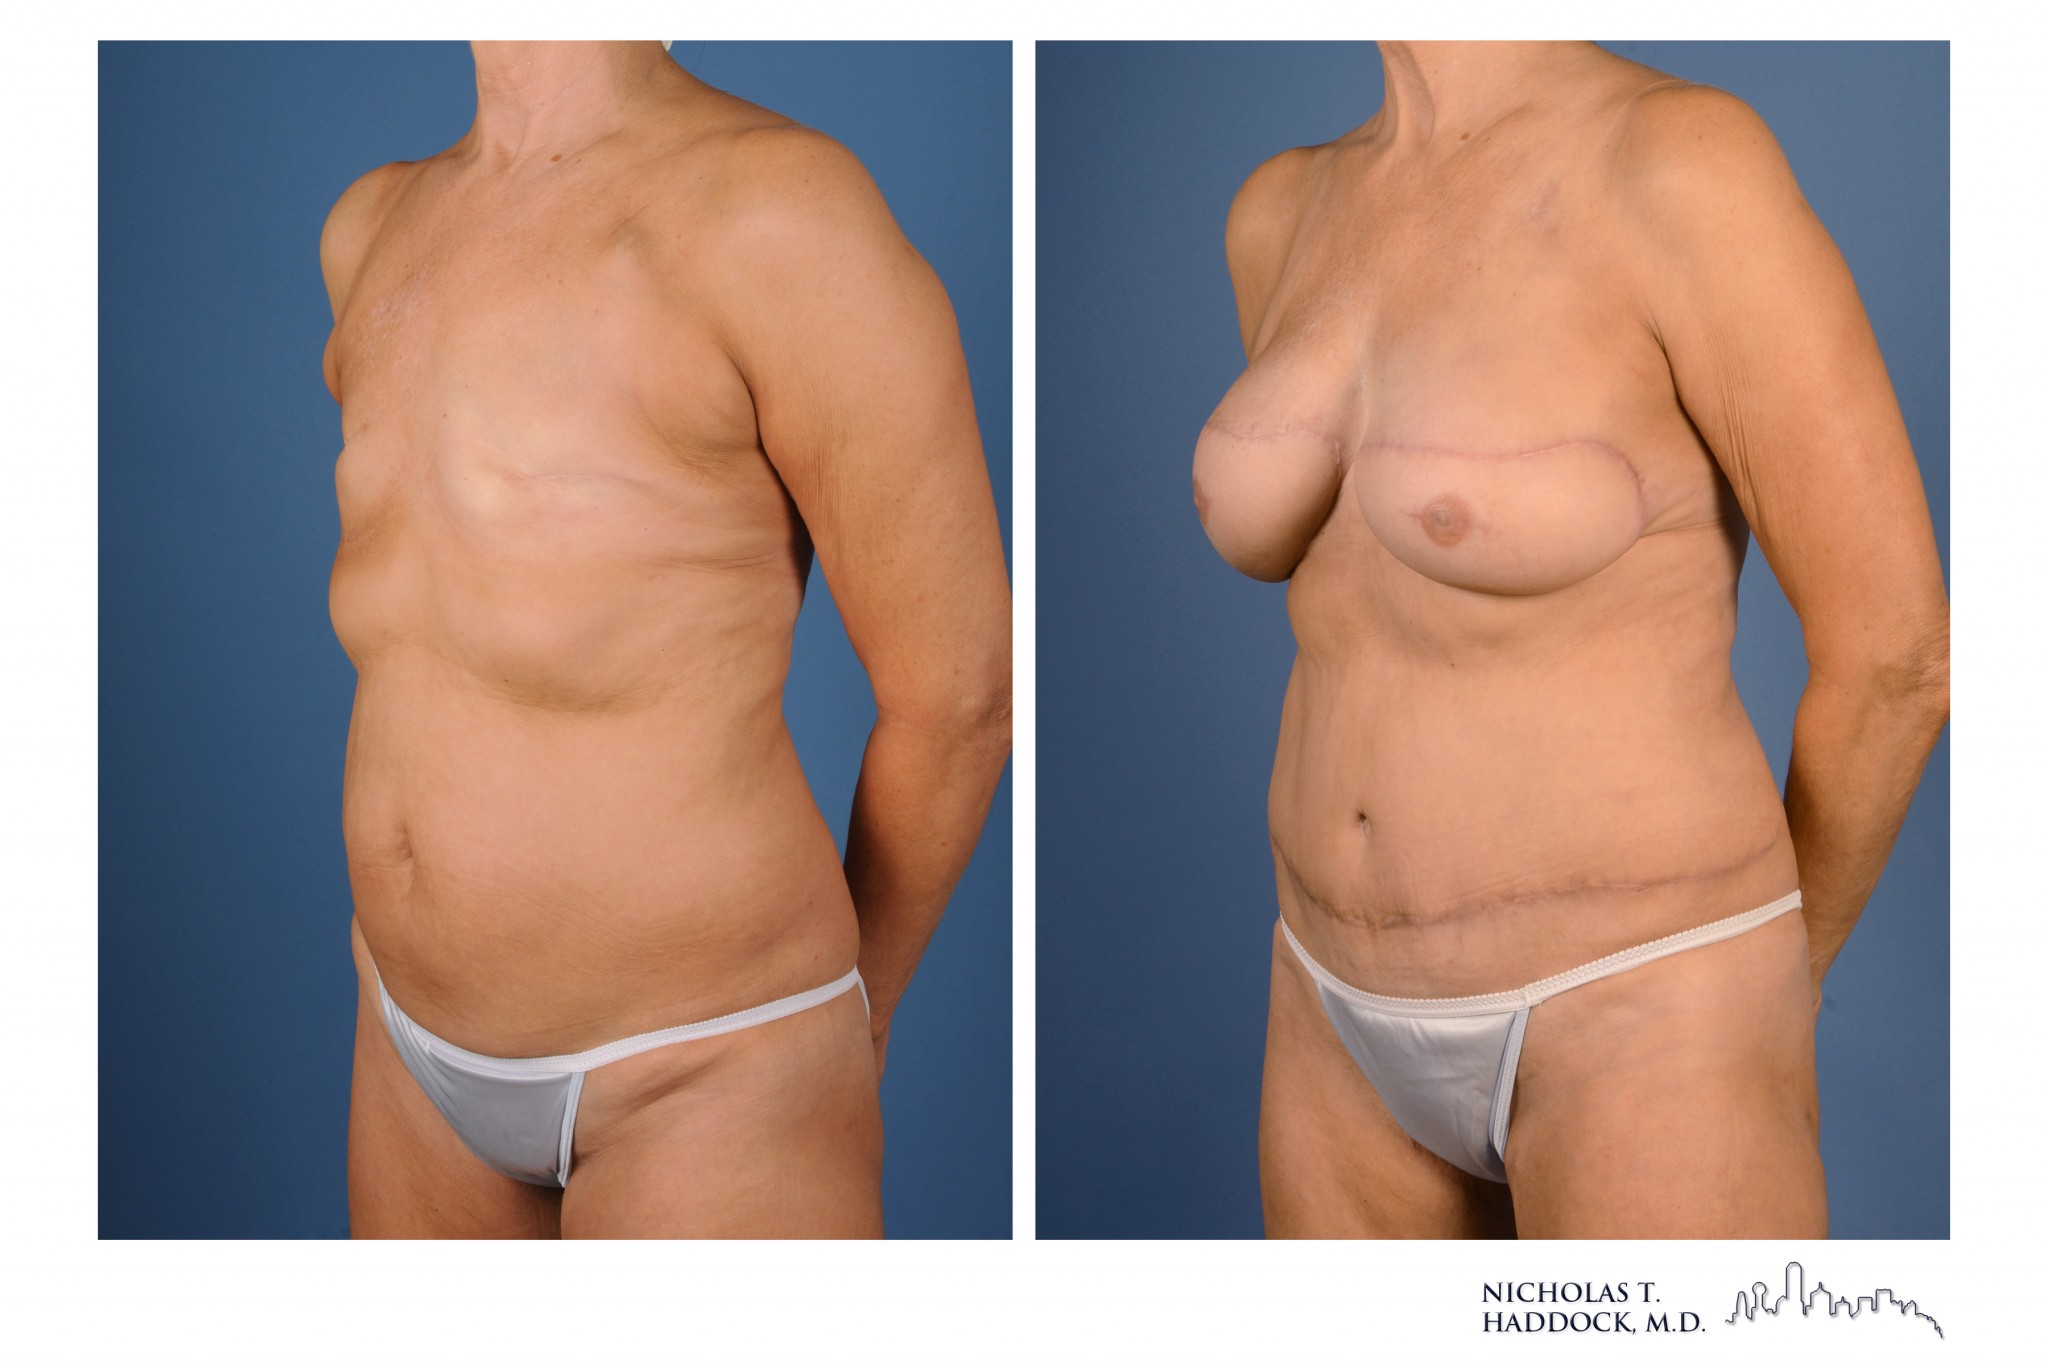 Flap breast reconstruction are